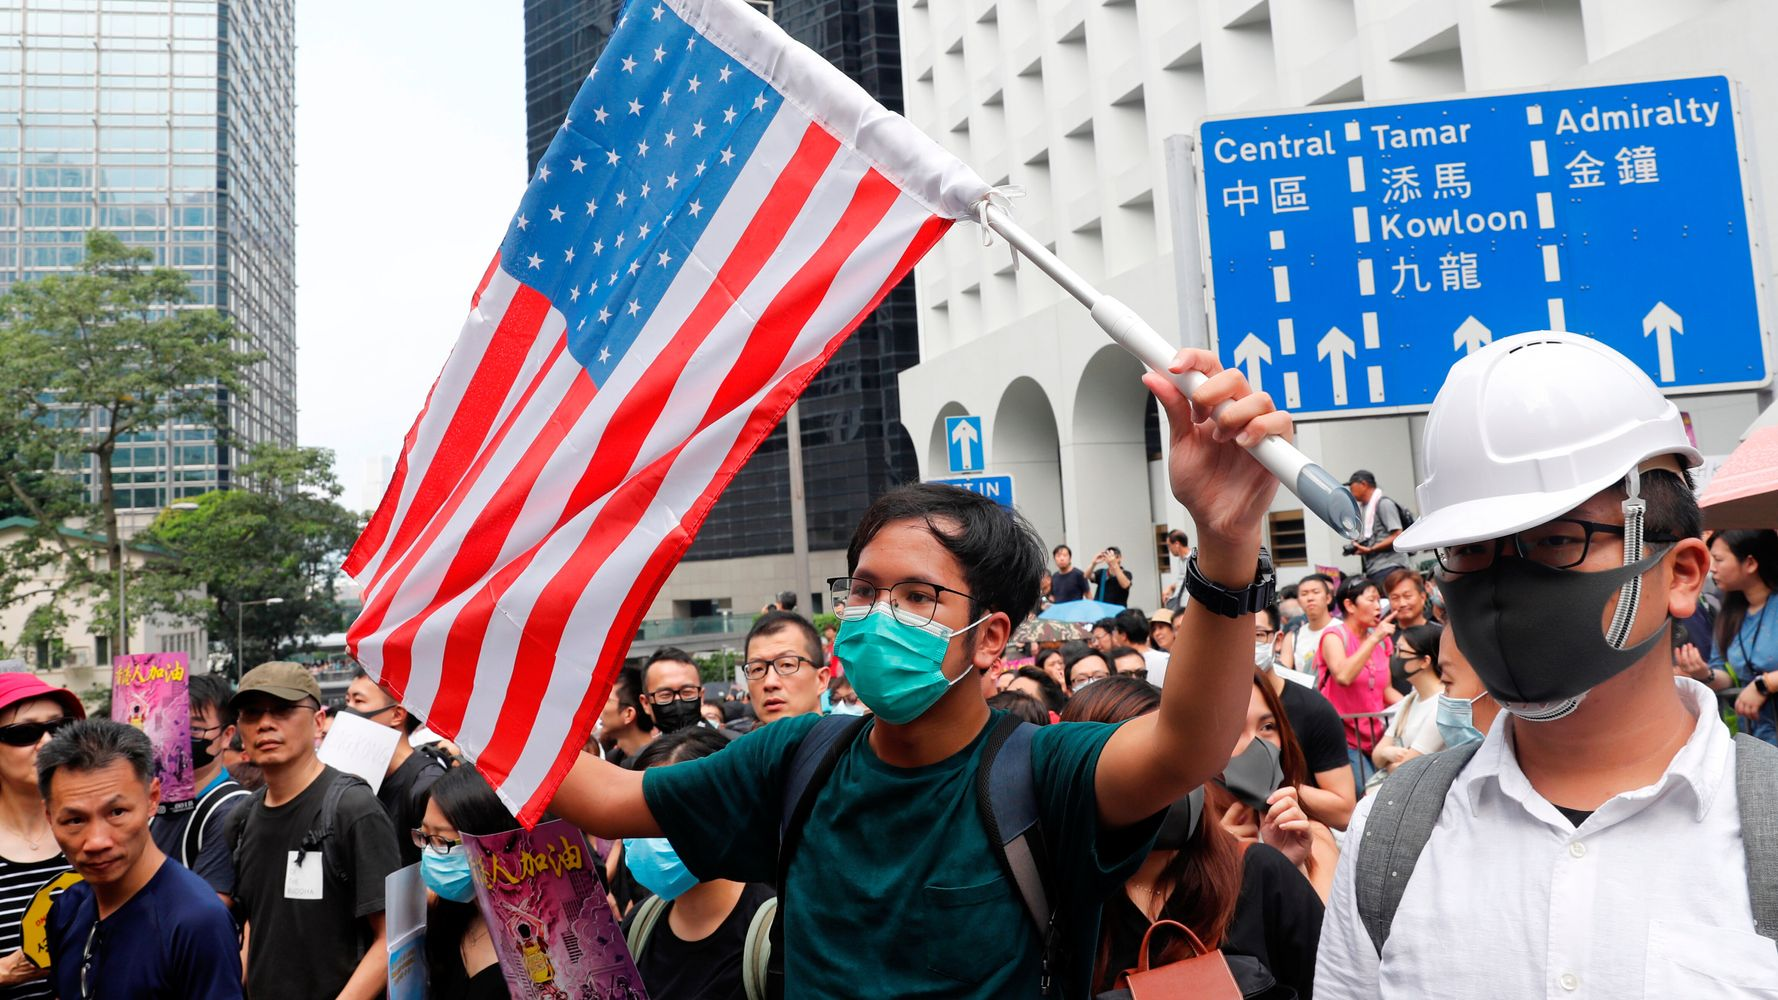 Westlake Legal Group 5d74d2573b00002a74d0c1e9 Hong Kong Protesters Appeal To Trump To 'Liberate' City From China